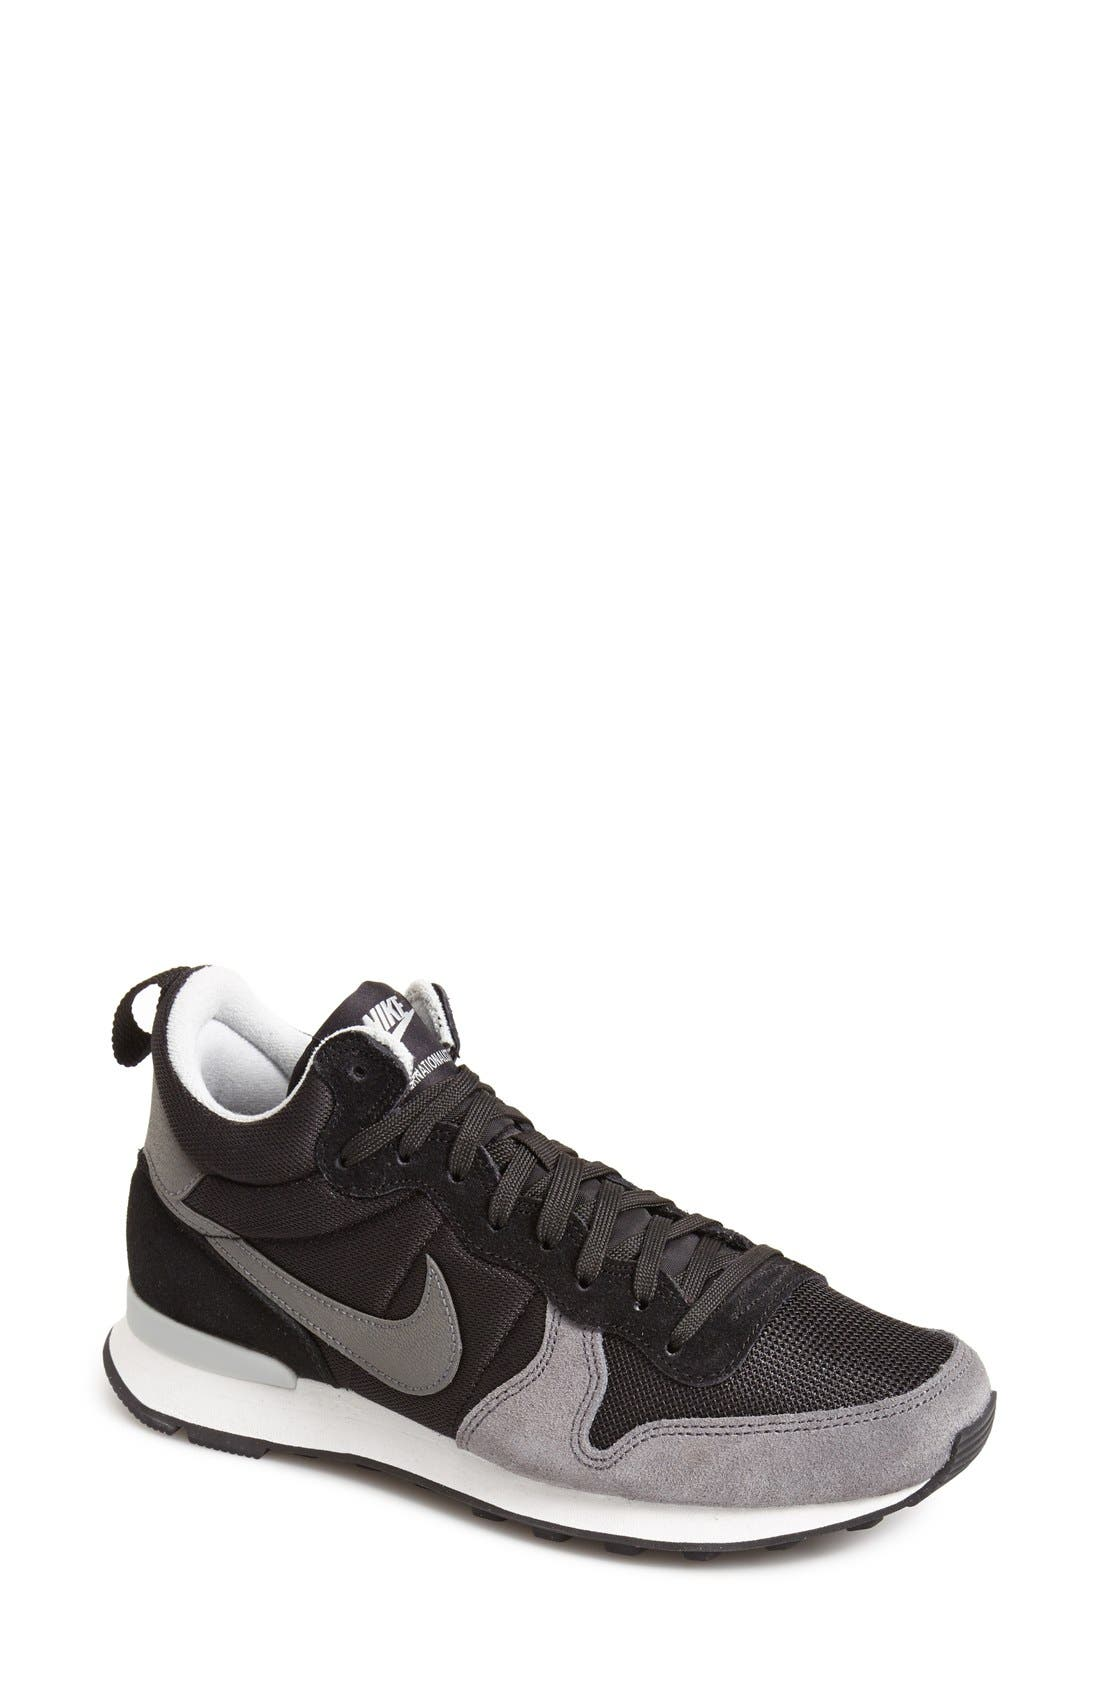 Main Image - Nike 'Internationalist Mid' Sneaker (Women)